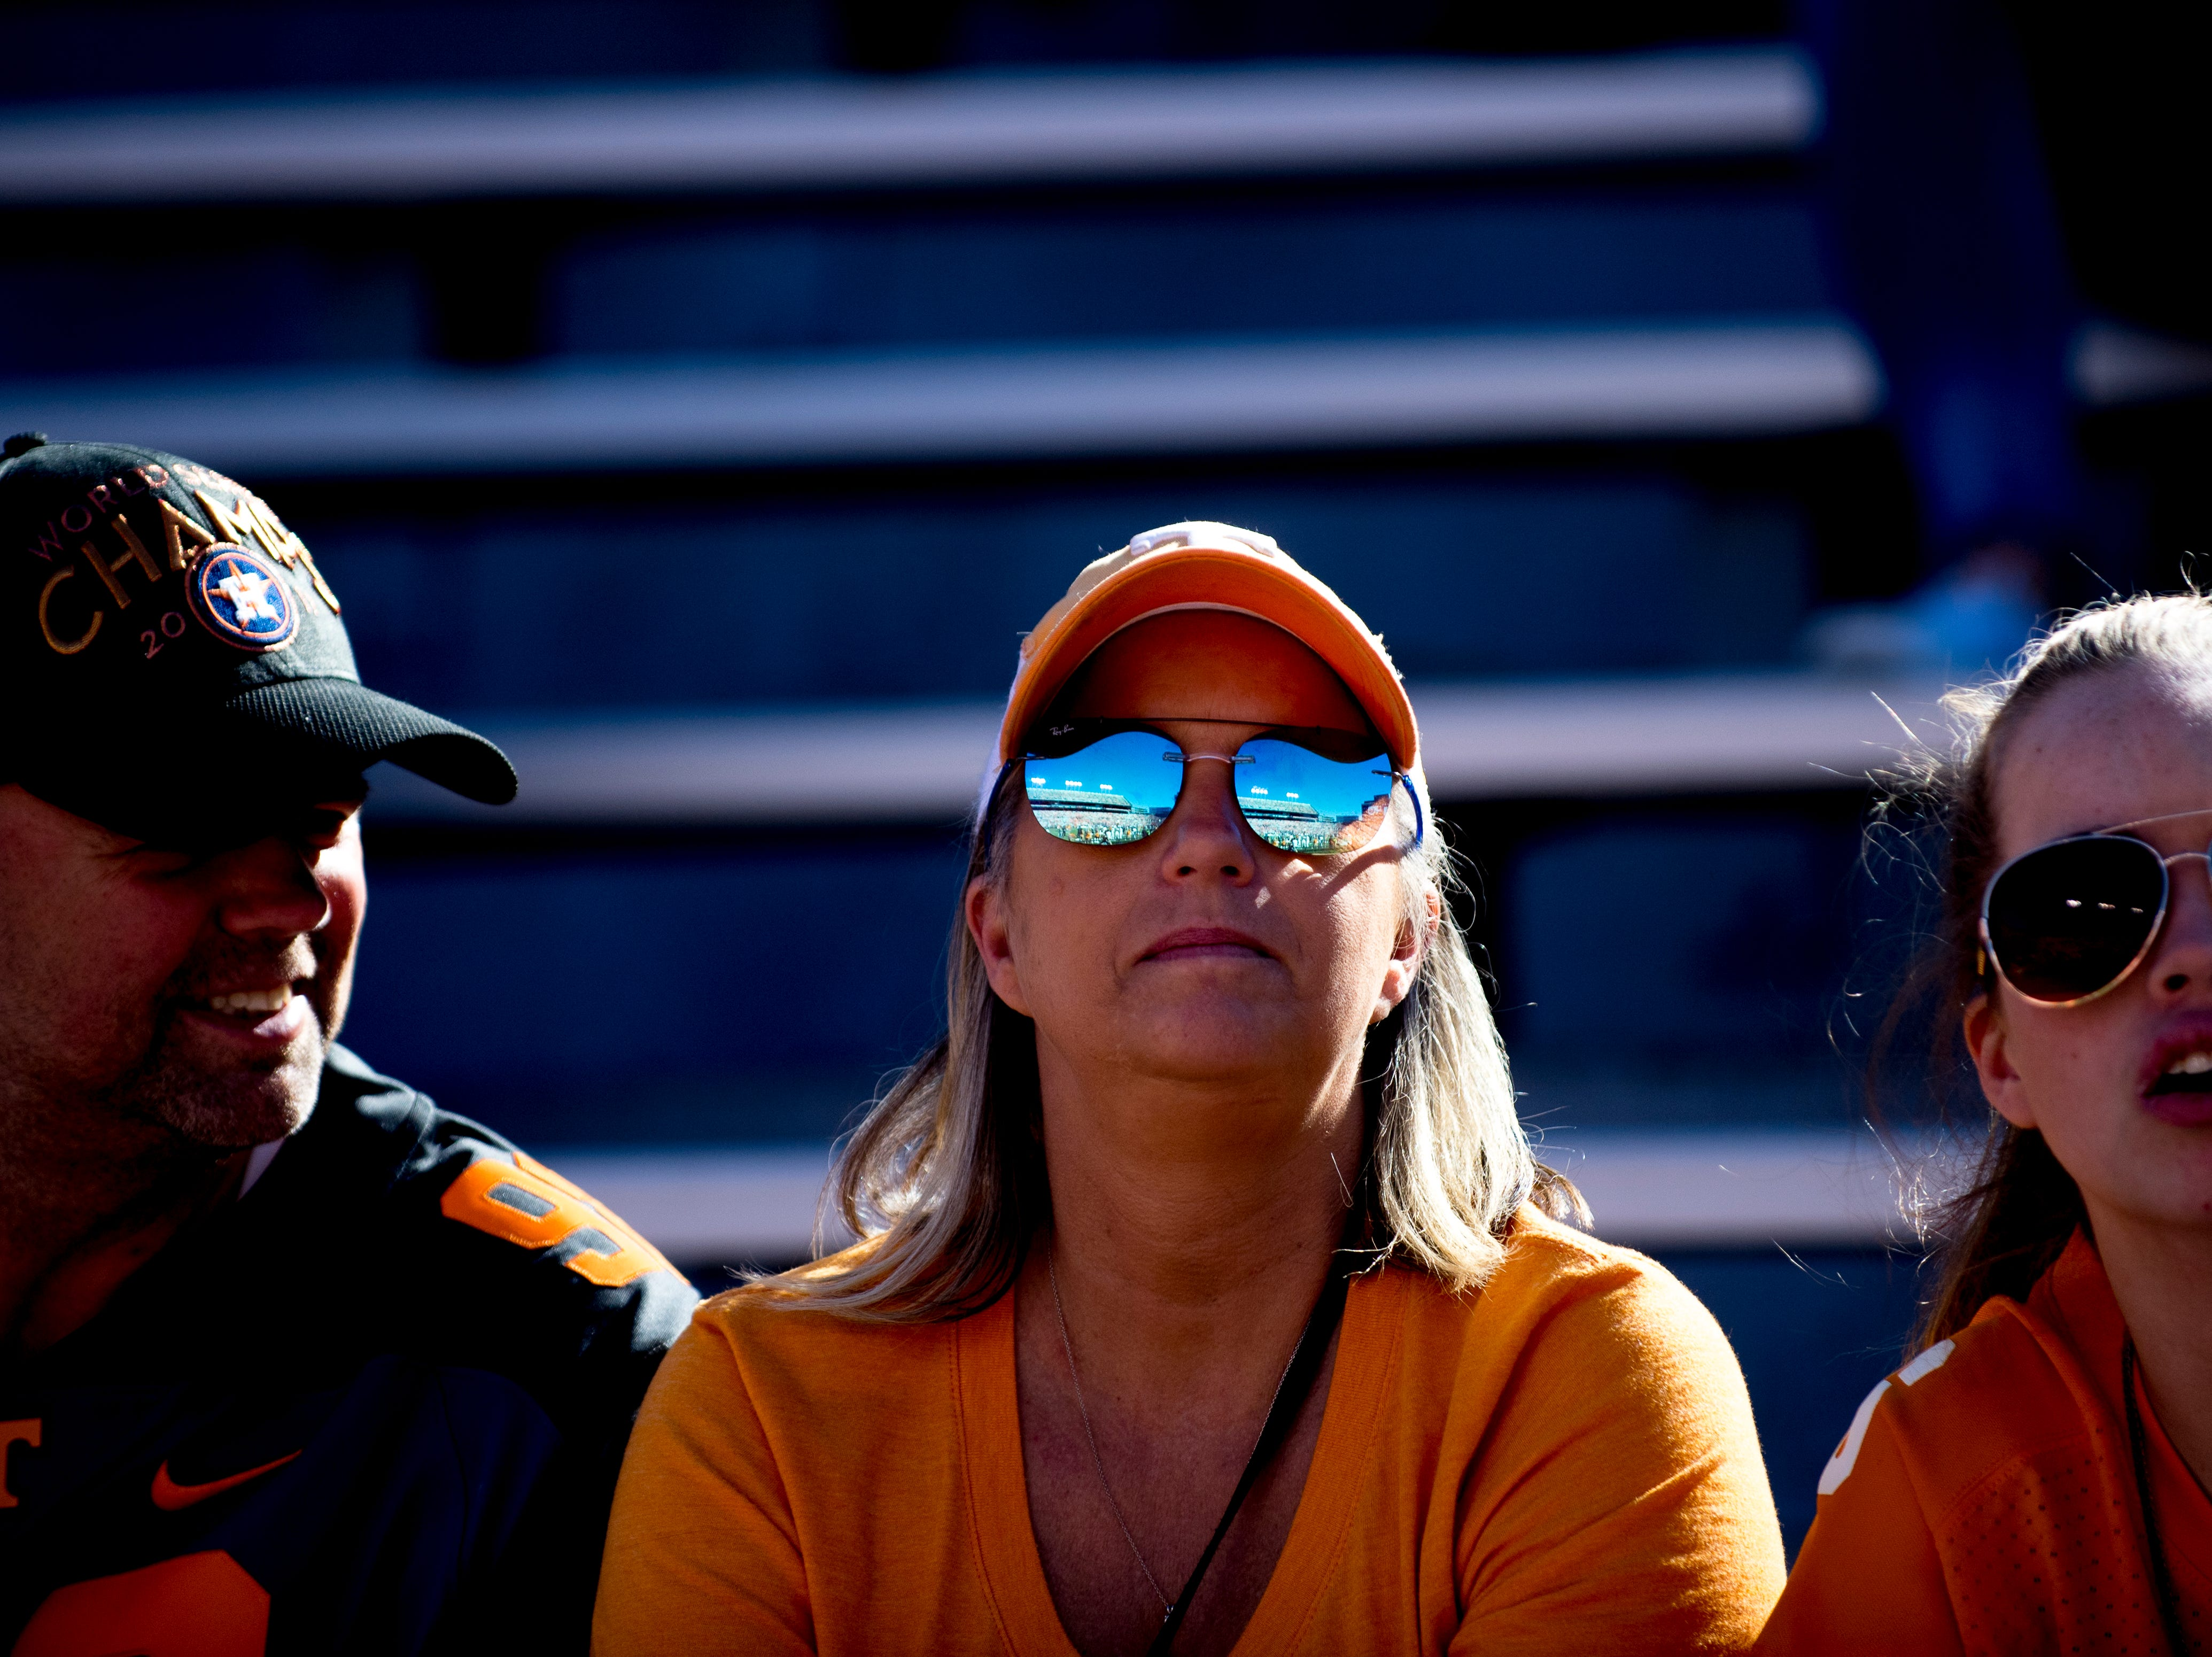 Tennessee fans sit in the stands during a game between Tennessee and Auburn at Jordan-Hare Stadium in Auburn, Alabama on Saturday, October 13, 2018.